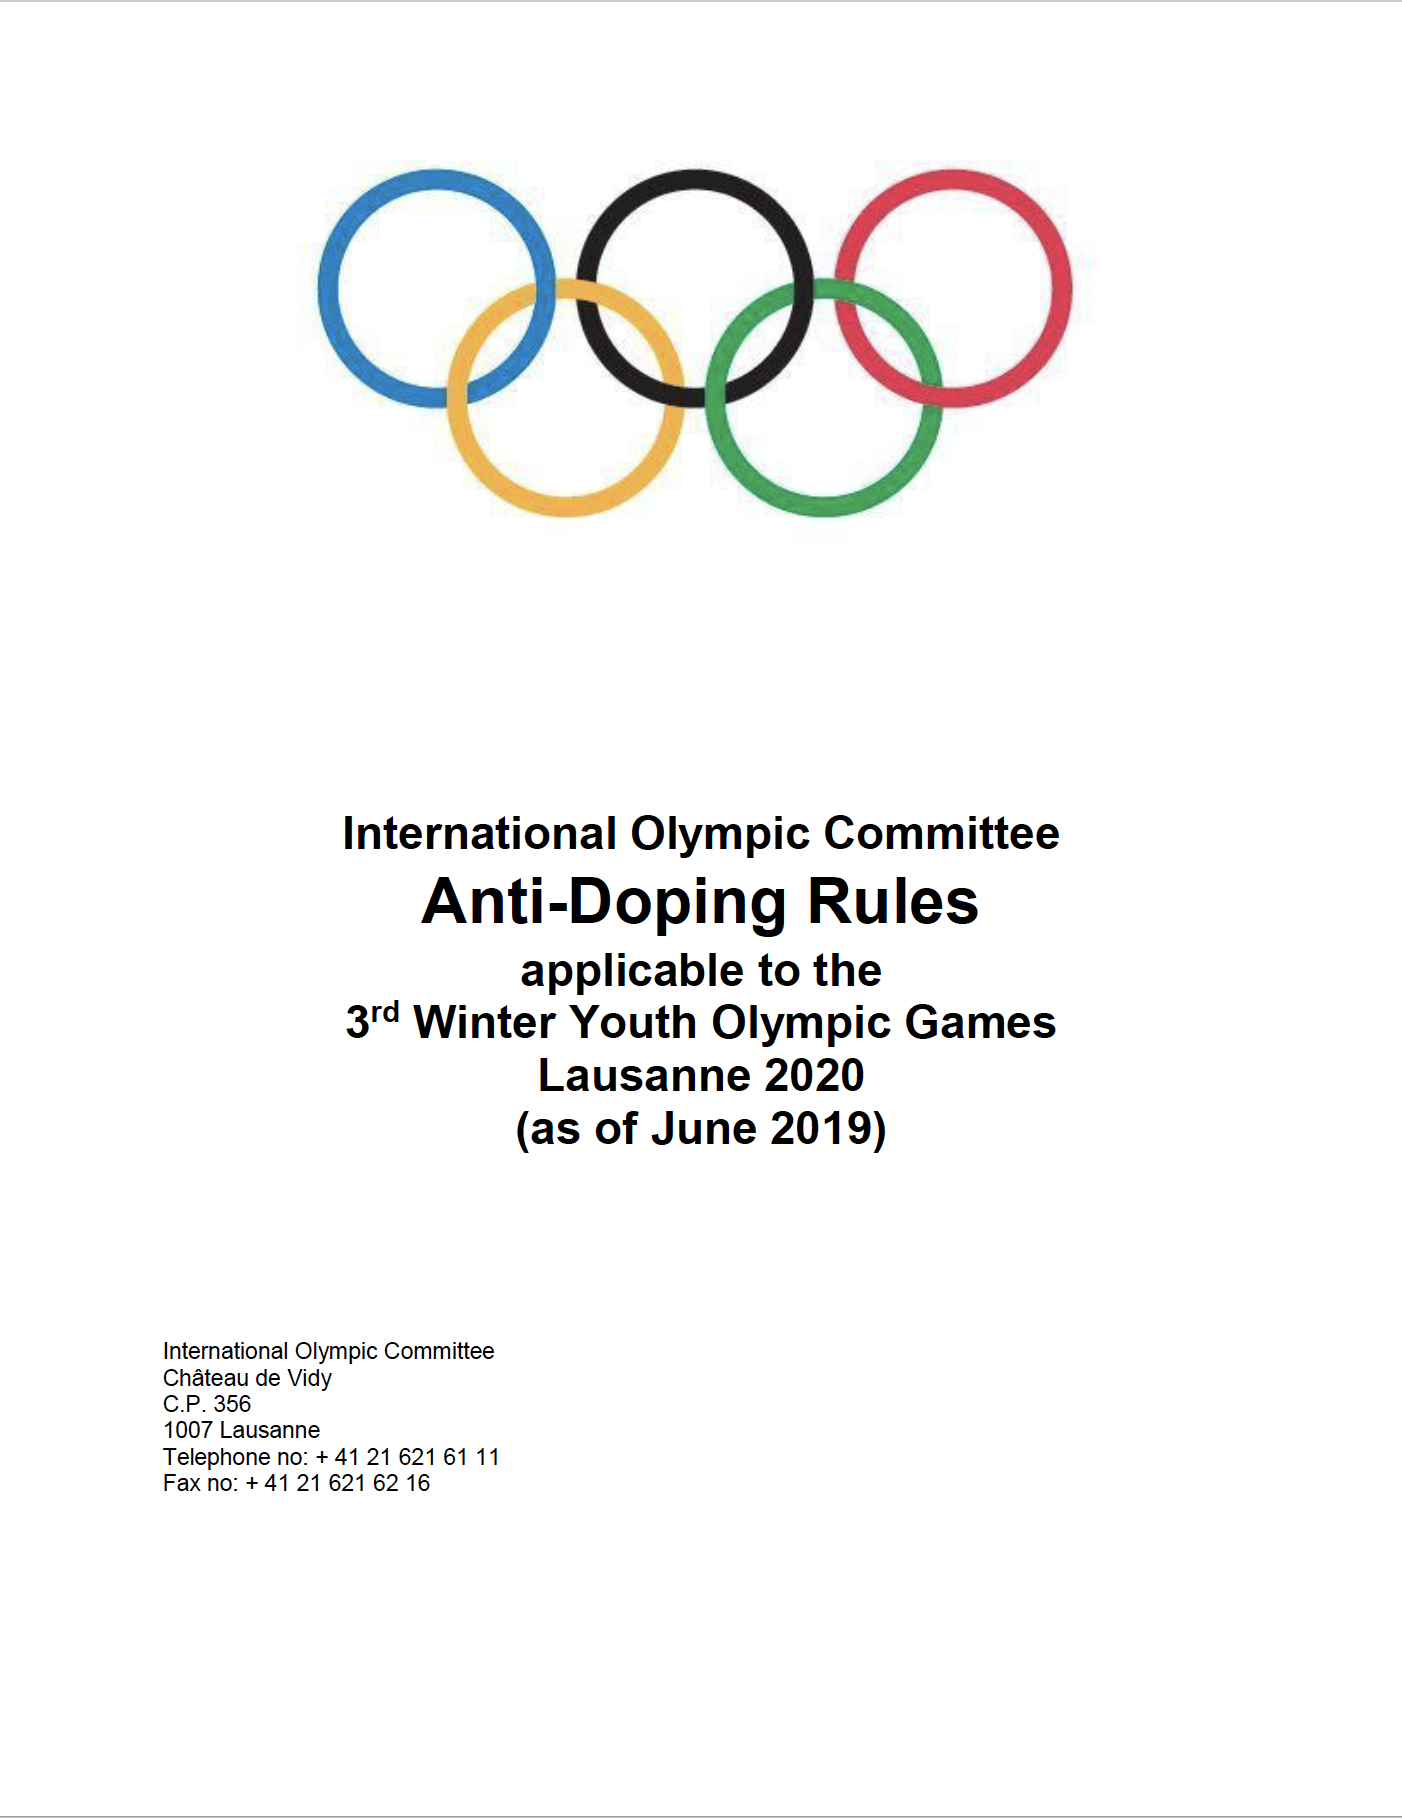 Lausanne 2020 Anti-Doping Rules